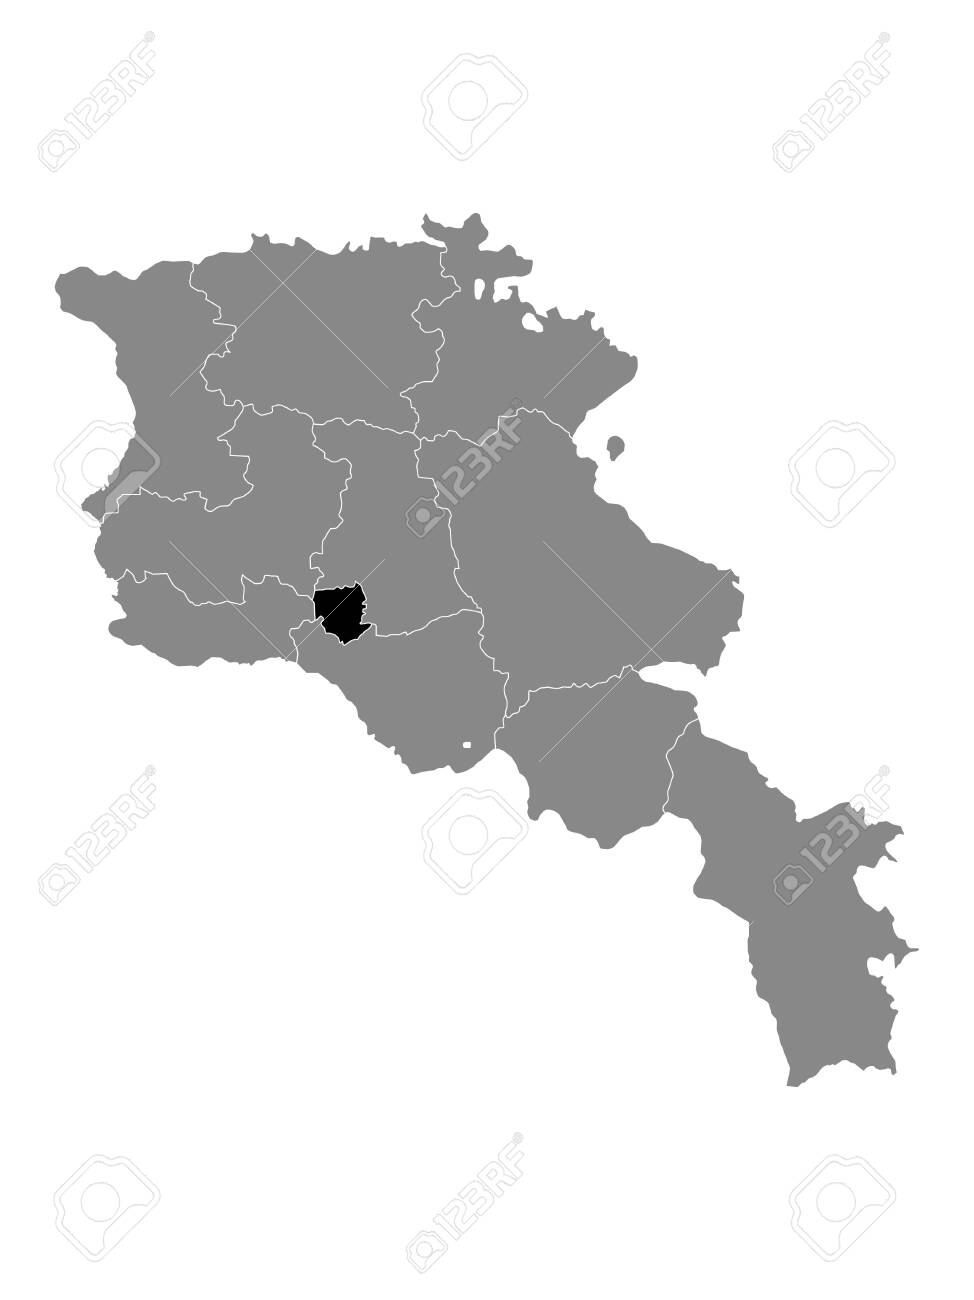 Picture of: Black Location Map Of Armenian Province Of Yerevan Within Grey Royalty Free Cliparts Vectors And Stock Illustration Image 144747008